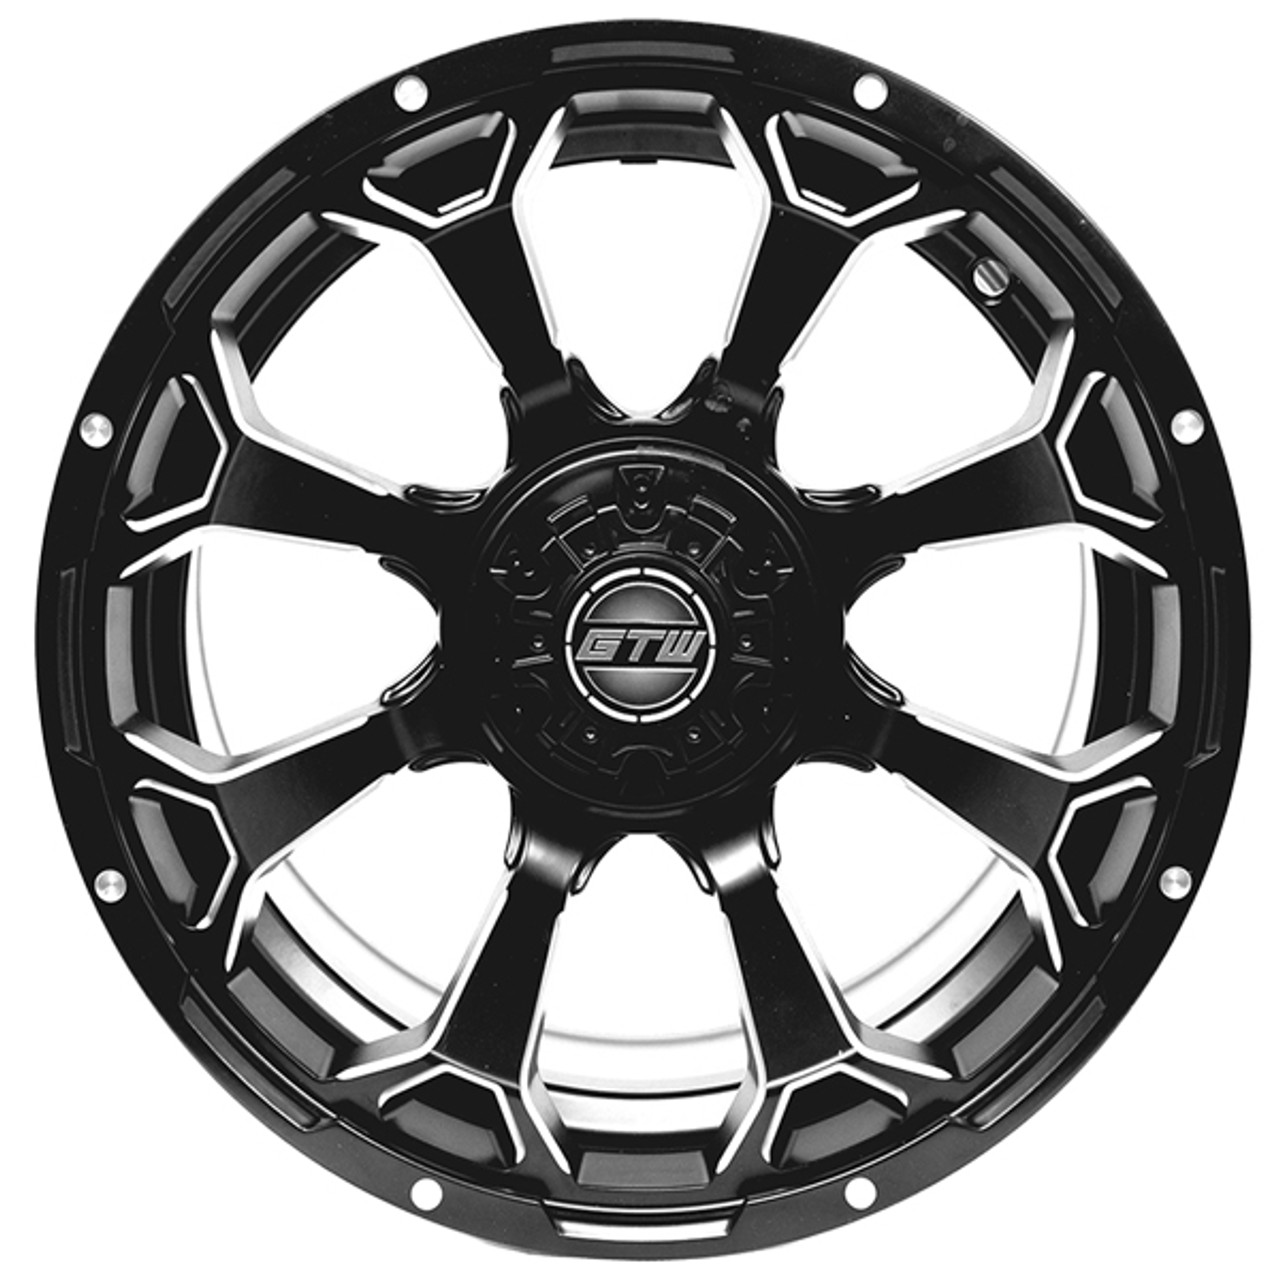 "GTW 14"" RAVEN Matte Black Wheel"